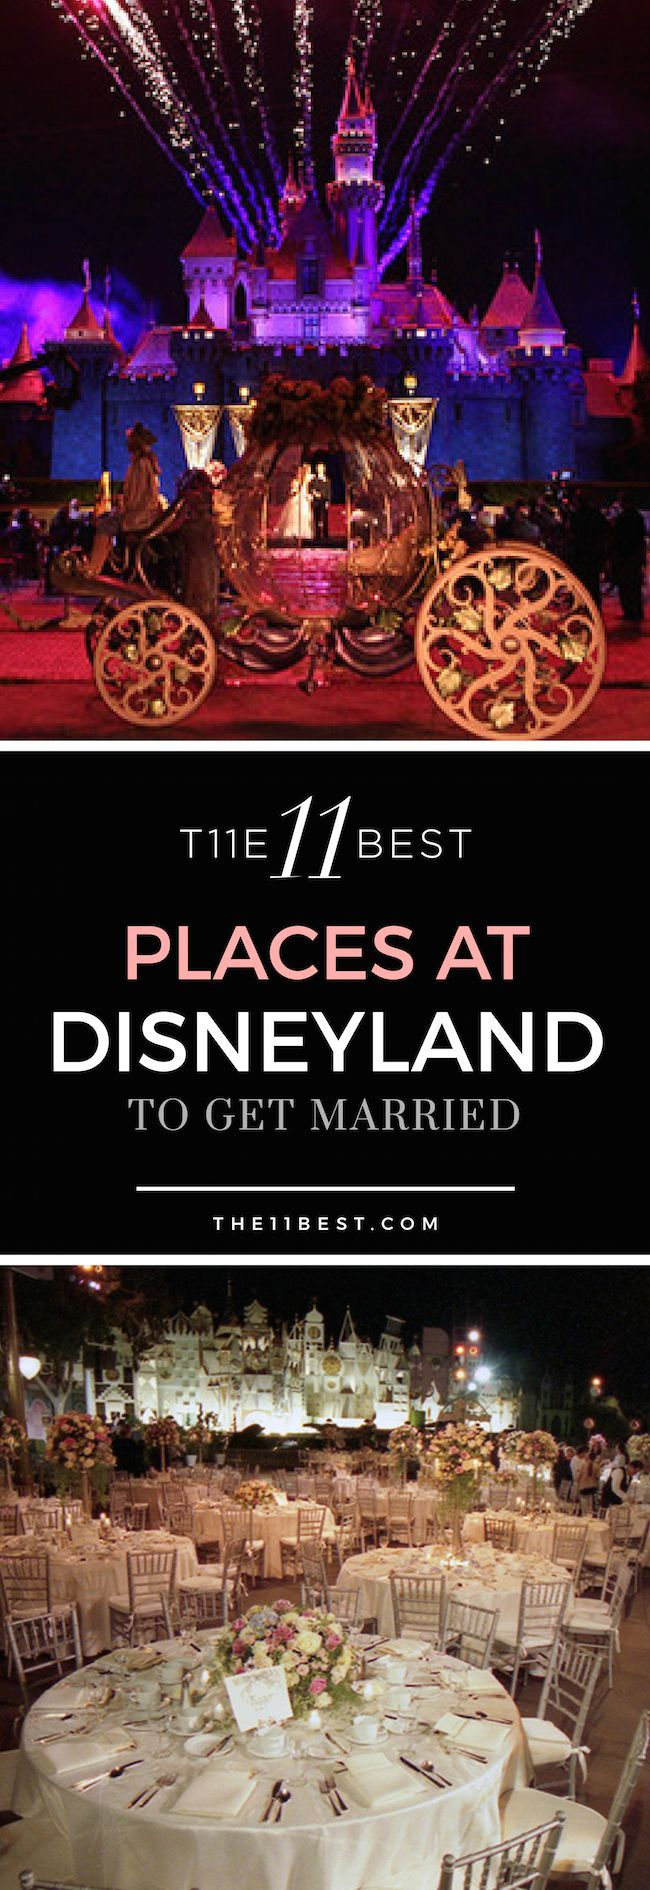 The 11 Best Places to get Married at Disney! Who knew a Disney wedding could be so truly magical?